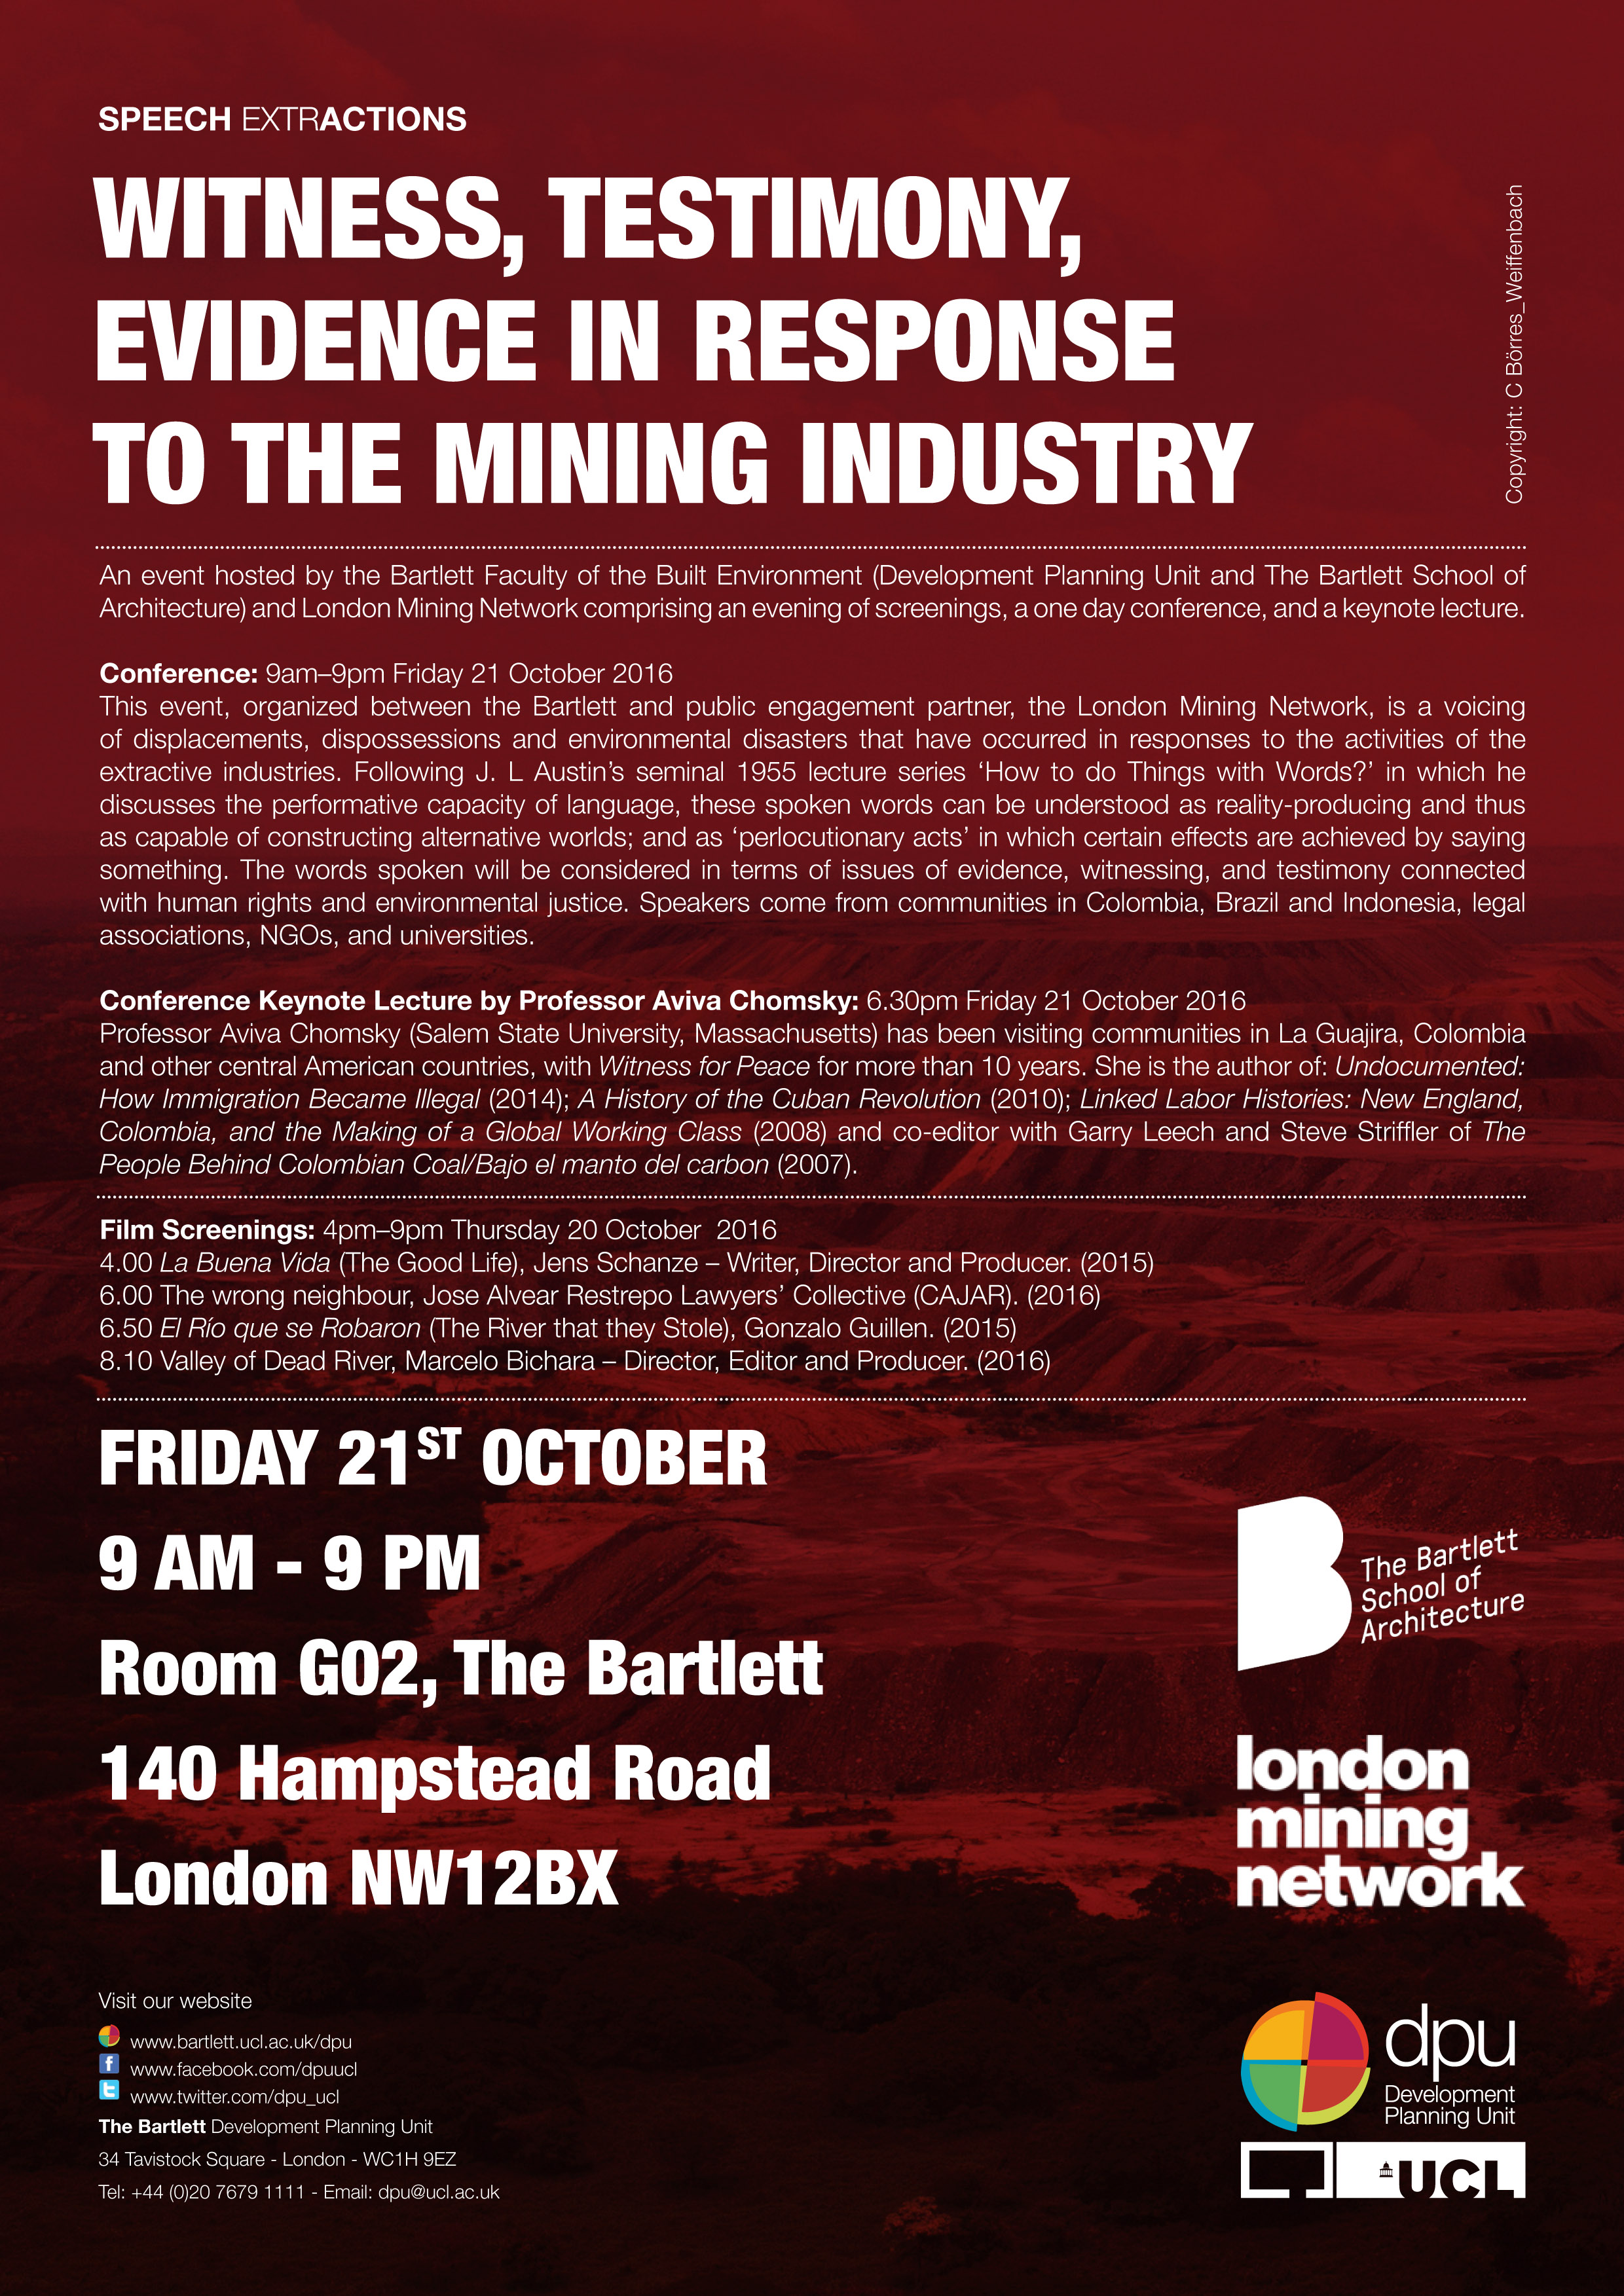 Witness, Testimony, Evidence in Response to the Mining Industry (20-21/10/16)